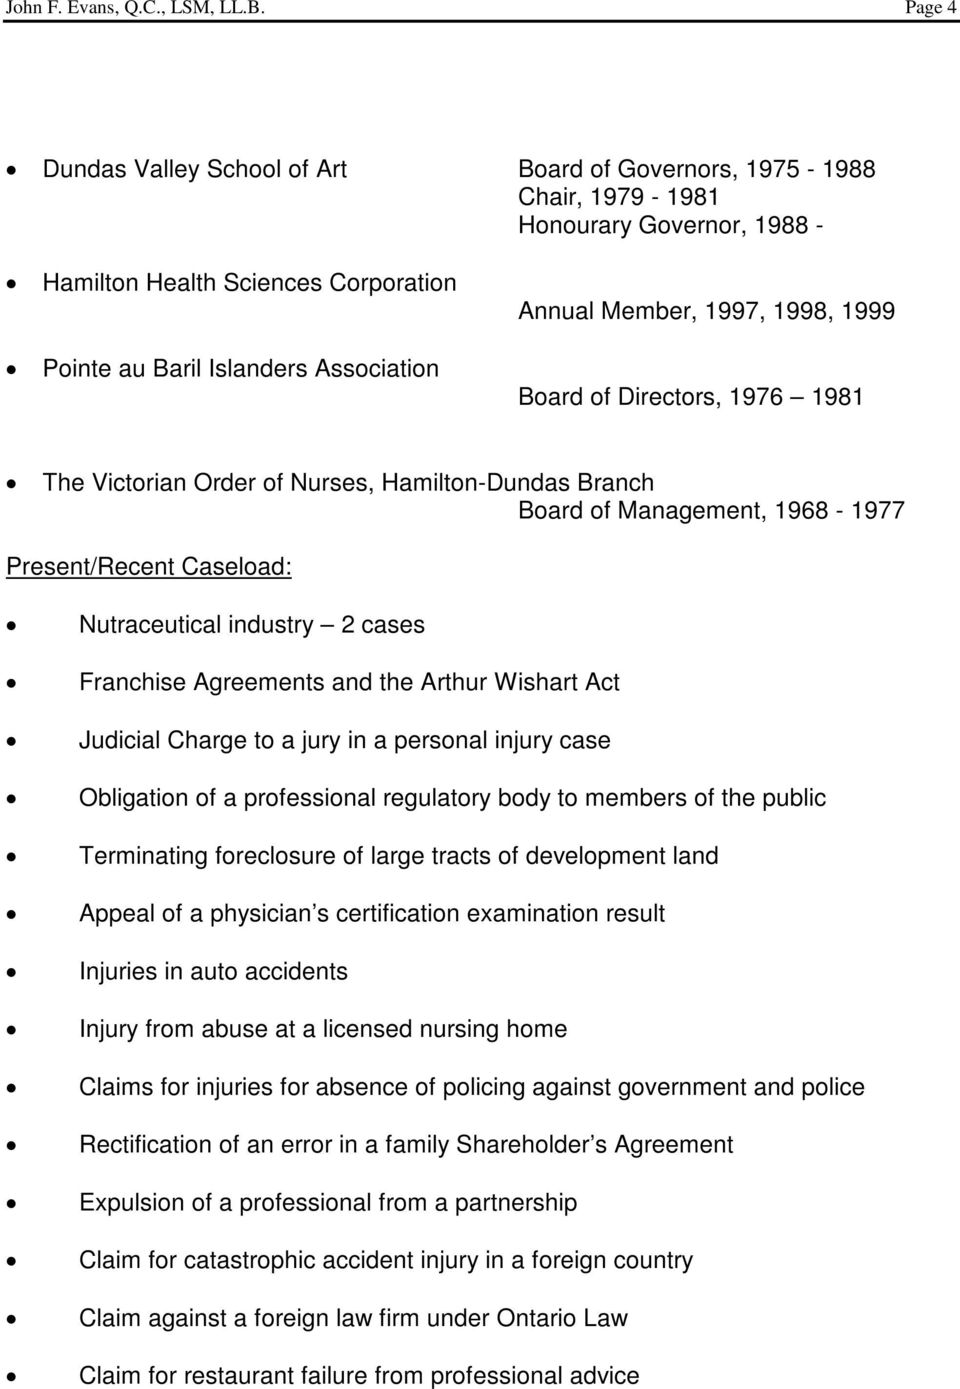 1997, 1998, 1999 Board of Directors, 1976 1981 The Victorian Order of Nurses, Hamilton-Dundas Branch Board of Management, 1968-1977 Present/Recent Caseload: Nutraceutical industry 2 cases Franchise